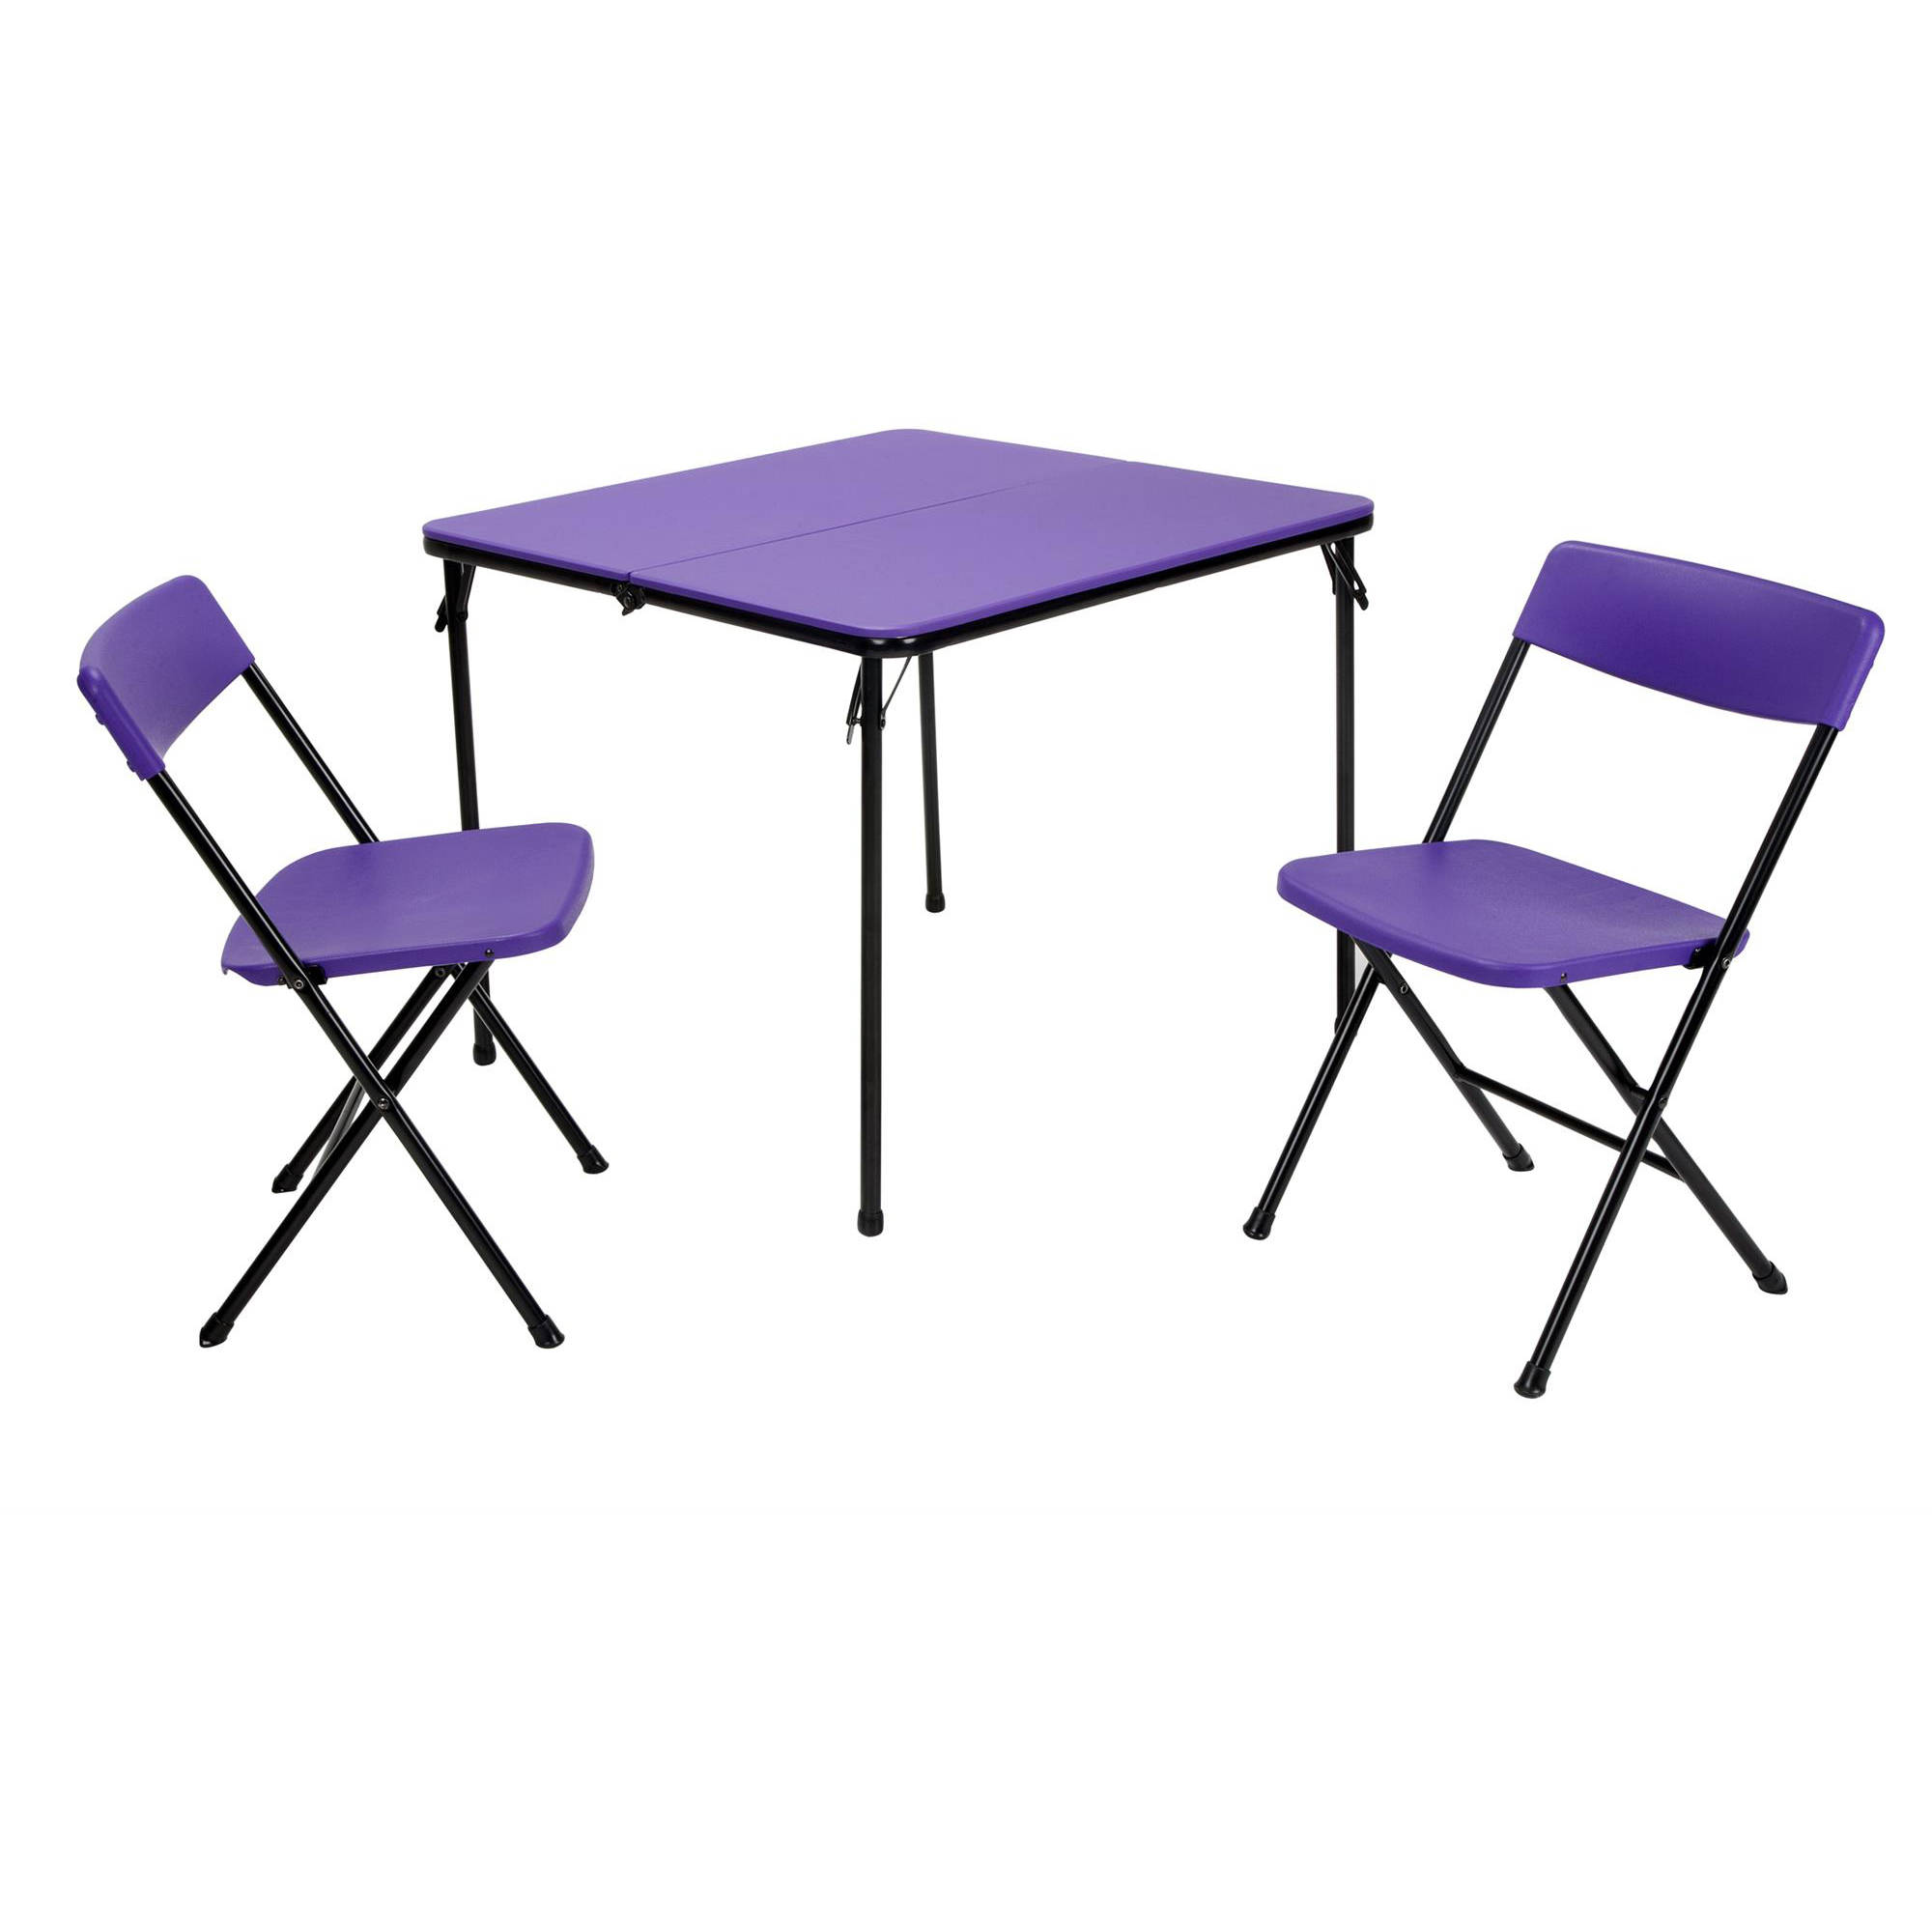 Cosco 3-Piece Centerfold Table and 2 Chairs, Indoor Outdoor Tailgate Set, Multiple Colors by Cosco